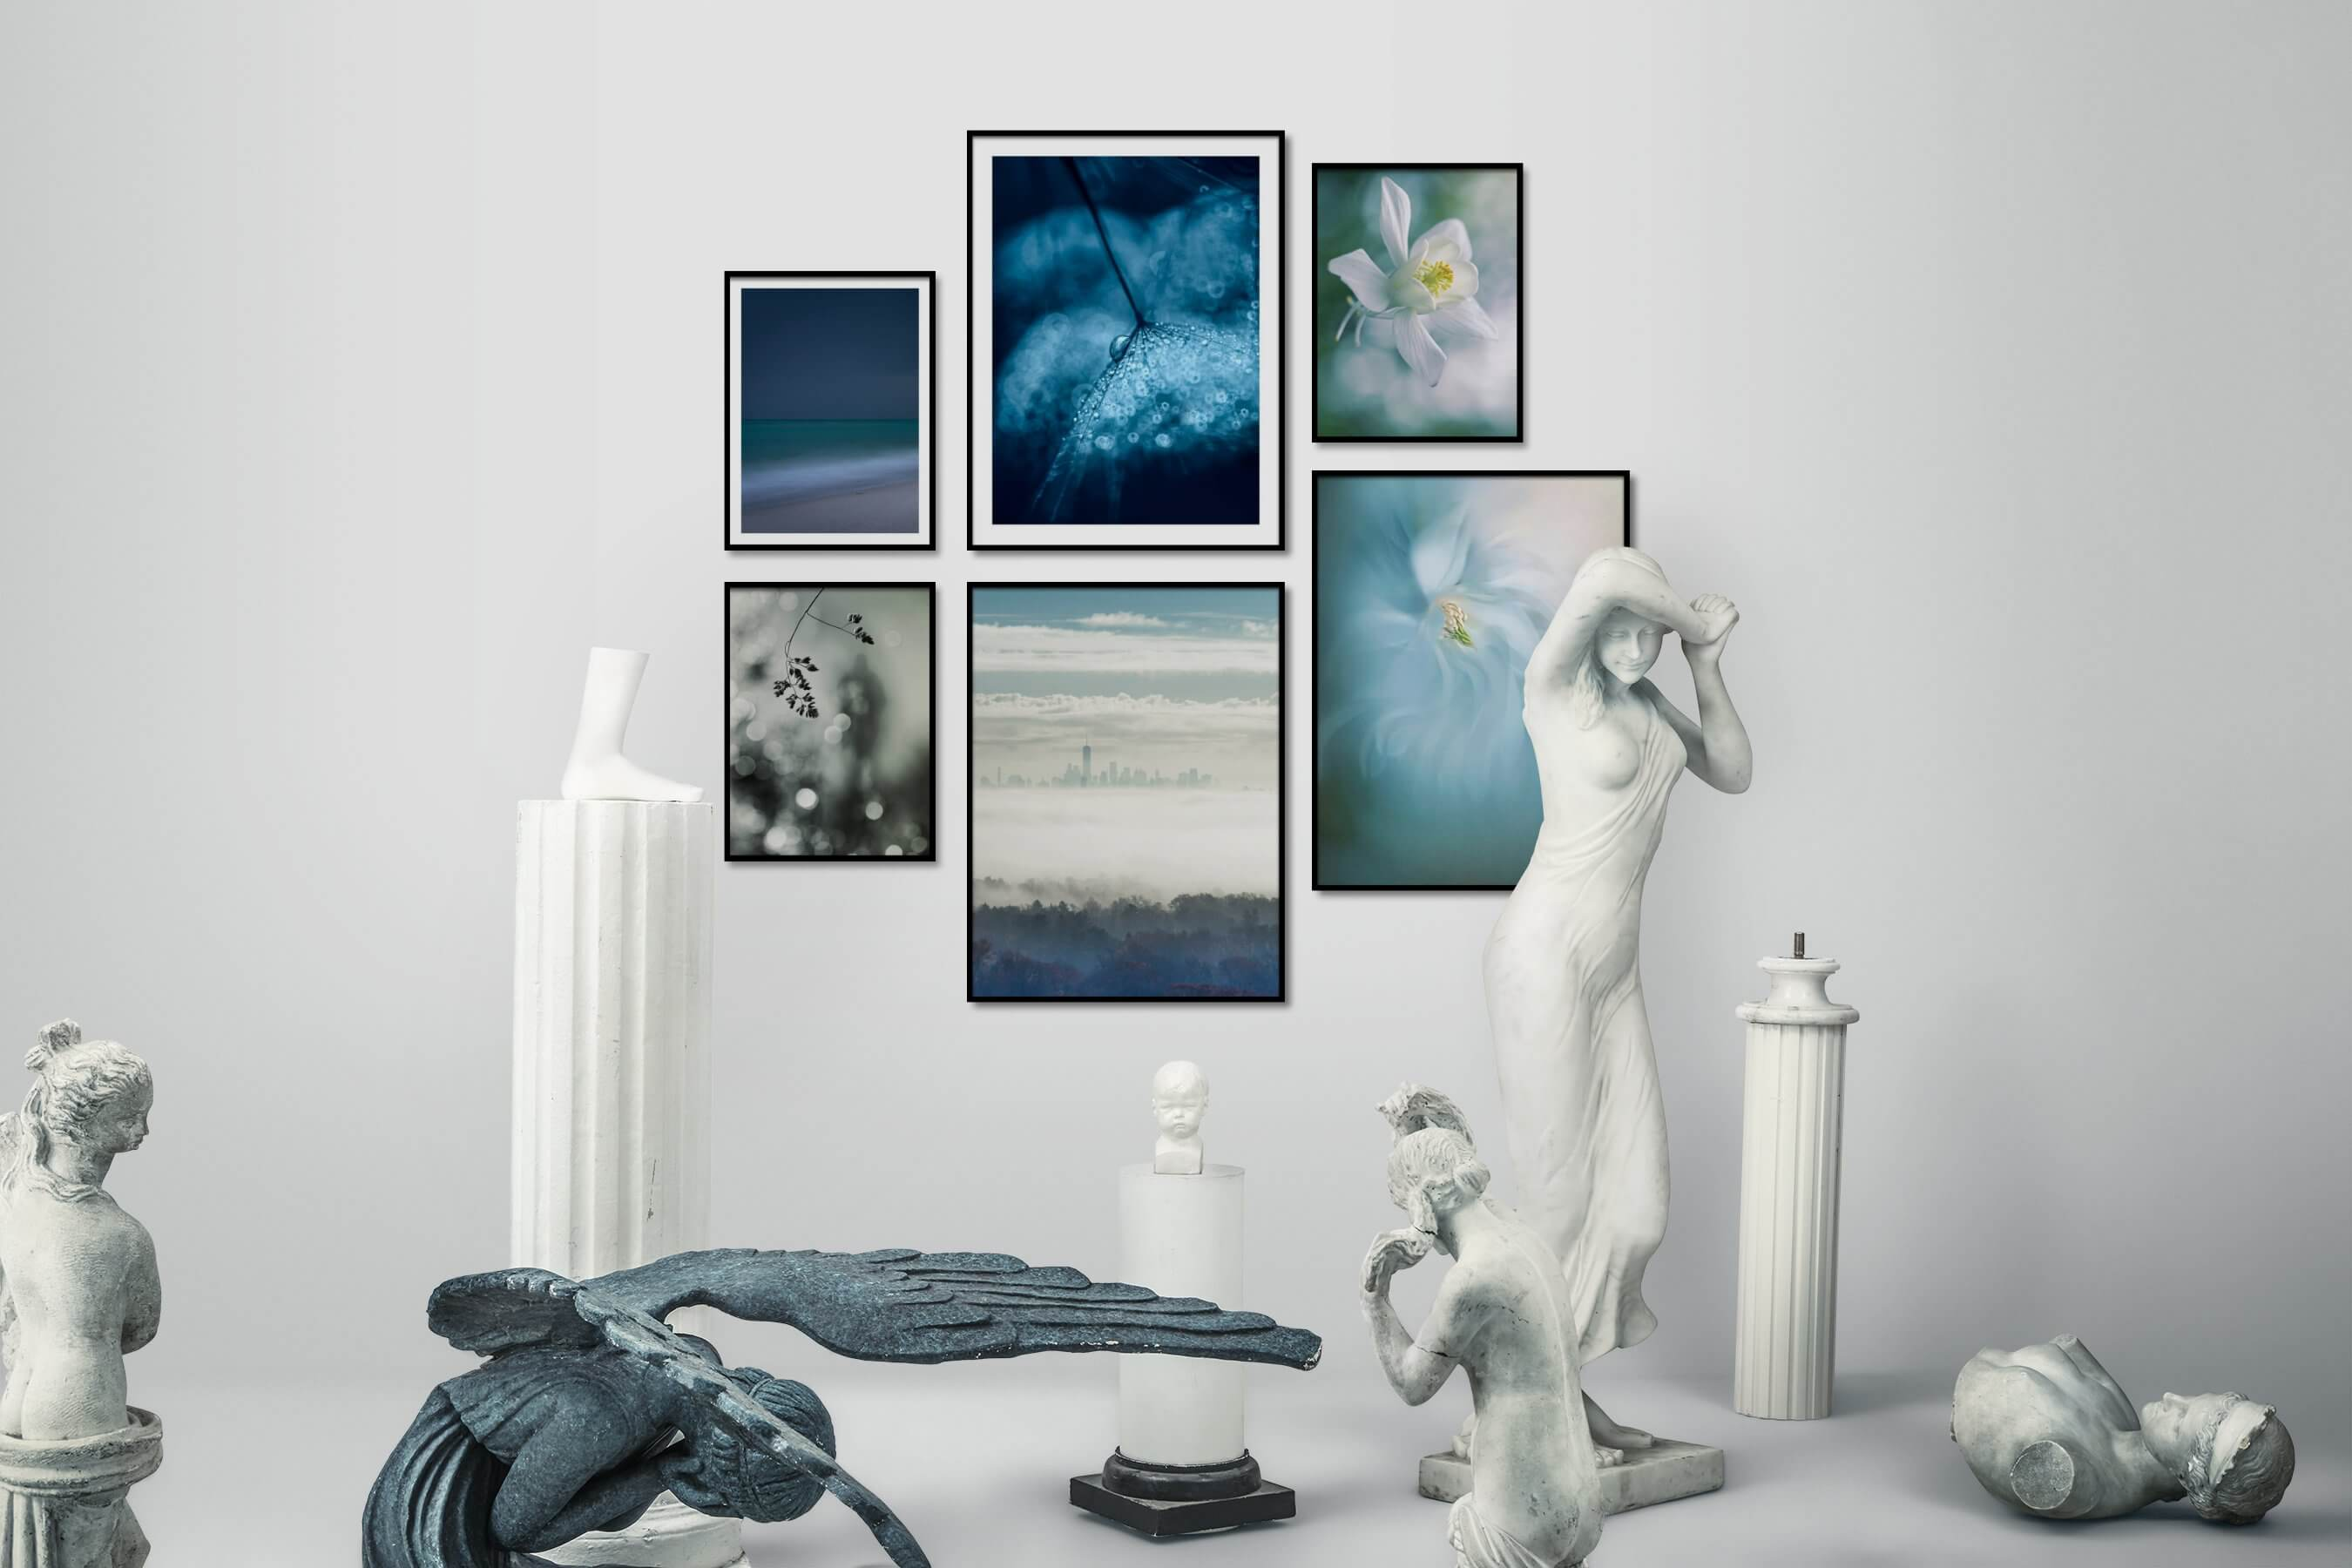 Gallery wall idea with six framed pictures arranged on a wall depicting For the Minimalist, Beach & Water, For the Moderate, Flowers & Plants, City Life, and Americana